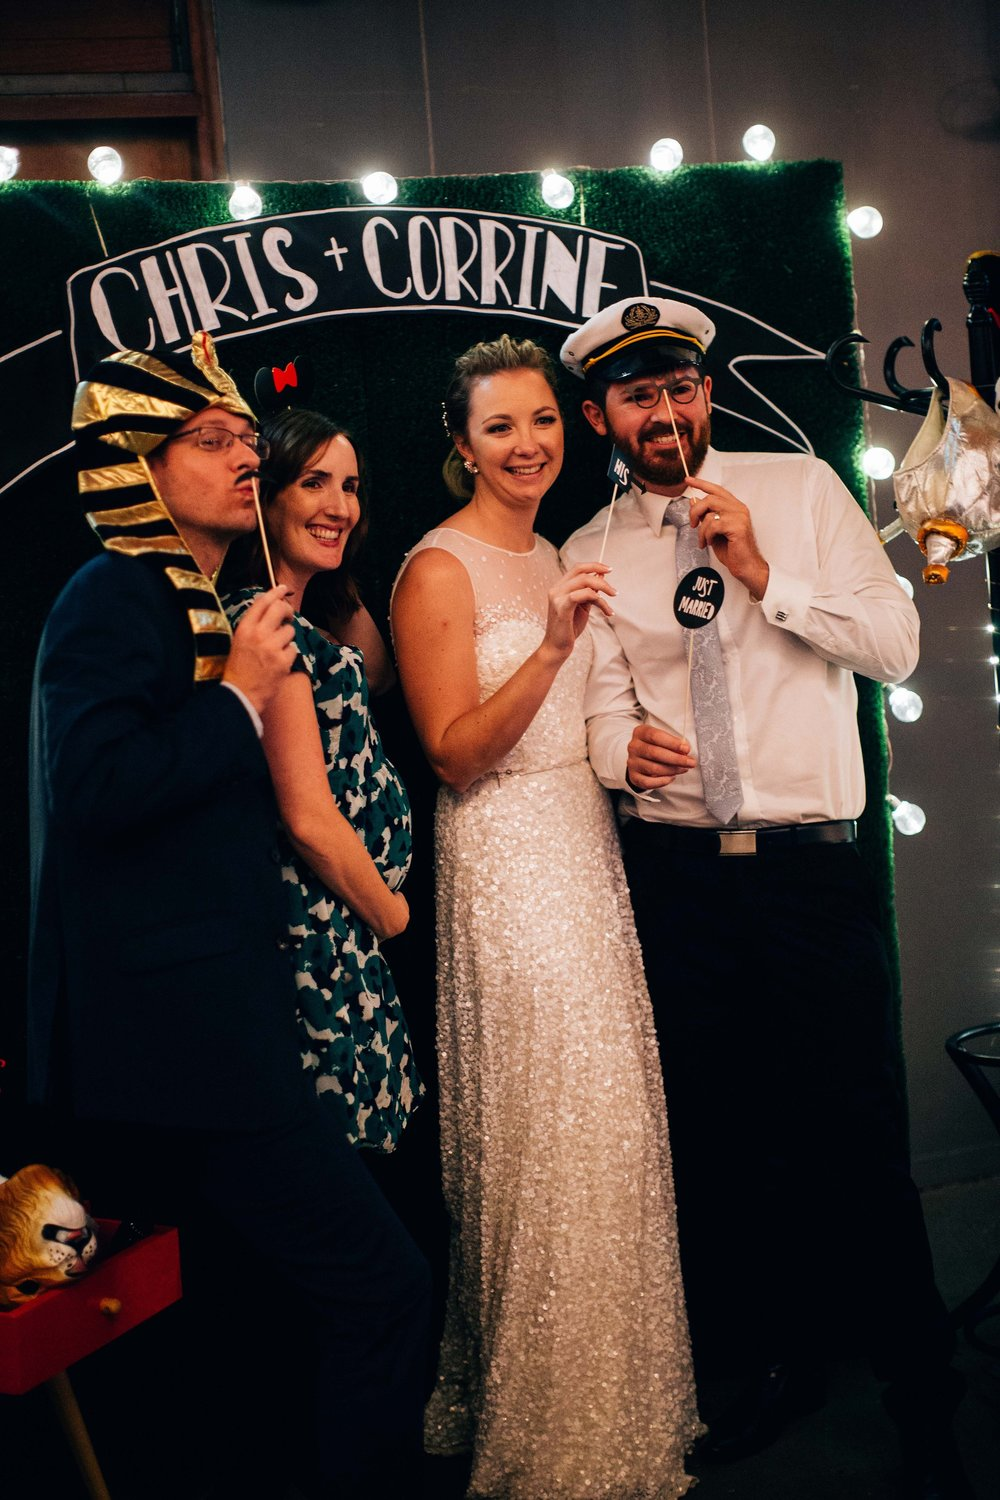 Corrine+Chris-900.jpg